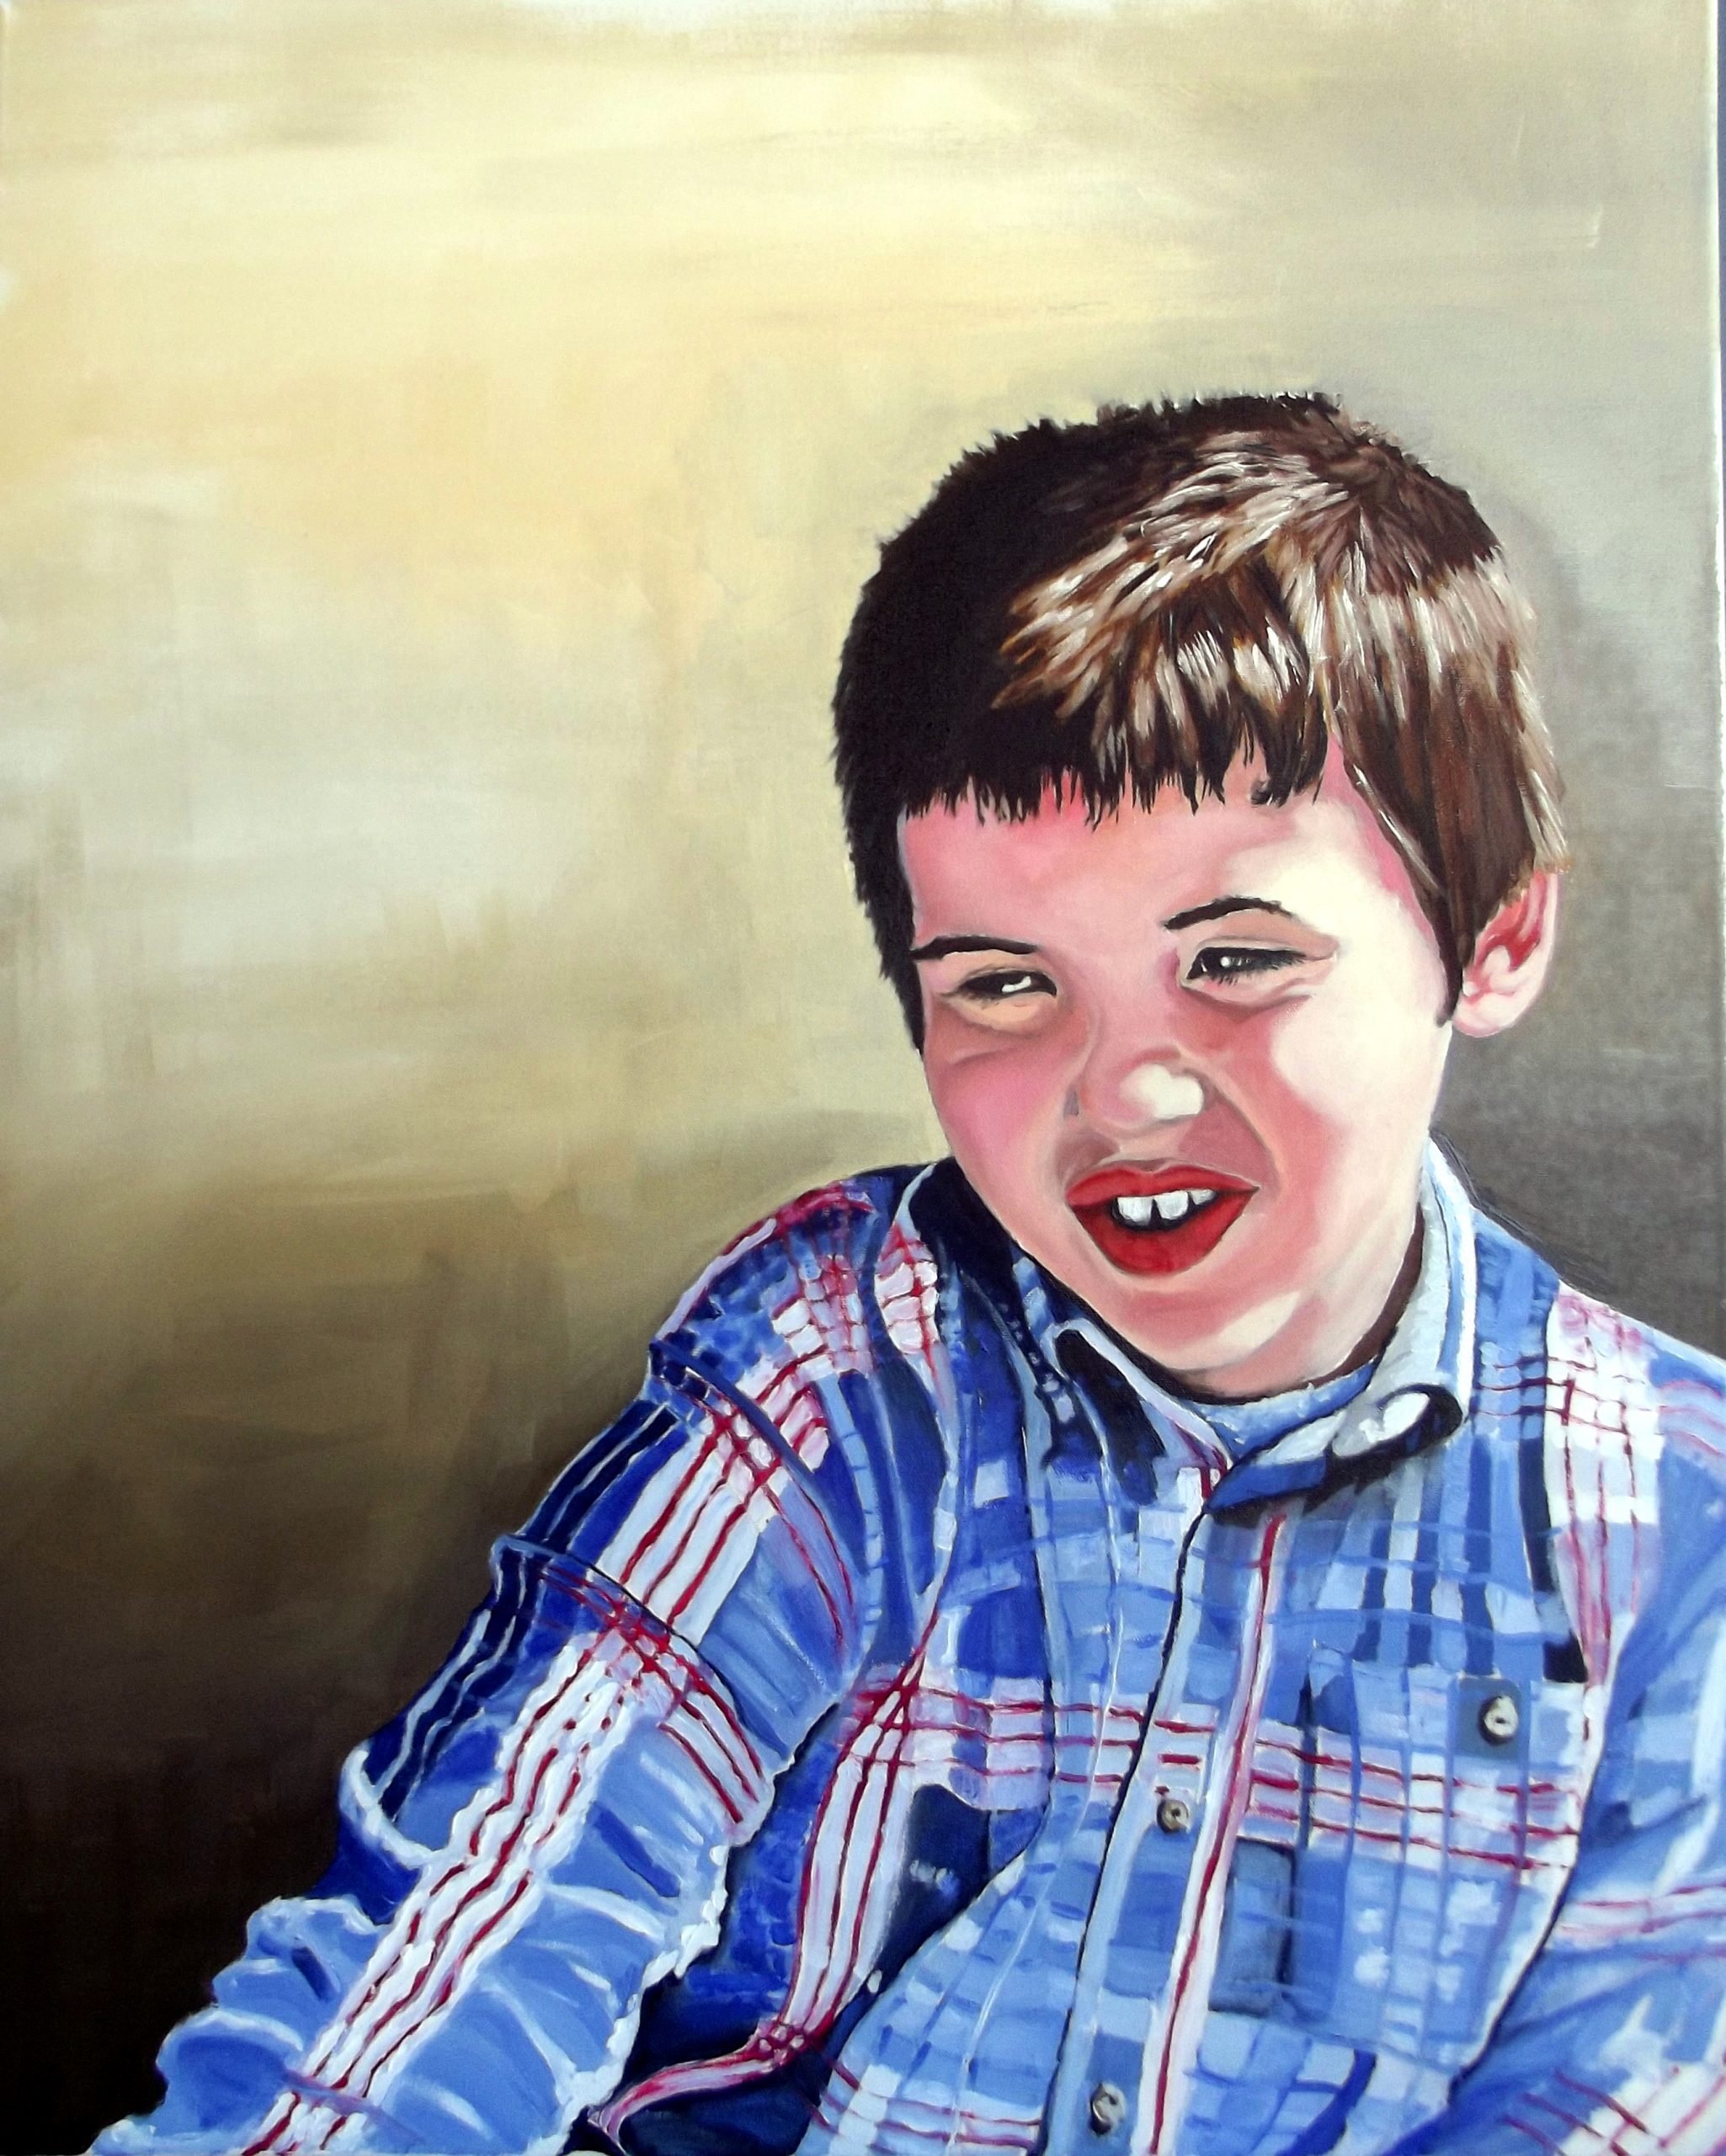 oil painting of a boy from photo